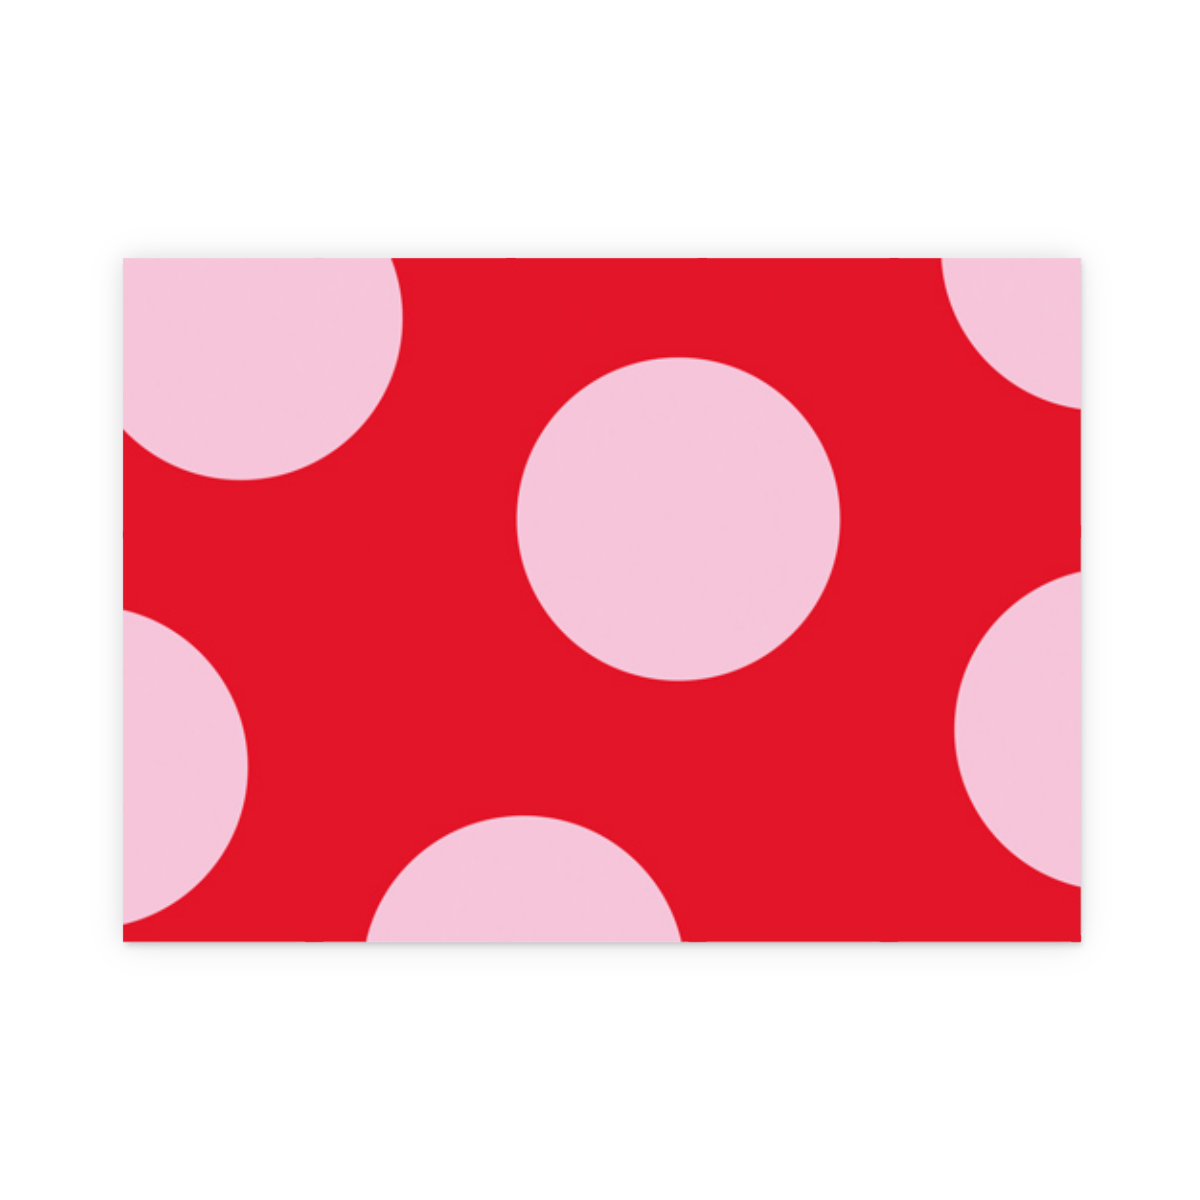 Https%3a%2f%2fwww.papier.com%2fproduct image%2f41022%2f42%2ff king pink polka dots 10392 rueckseite 1530786443.png?ixlib=rb 1.1